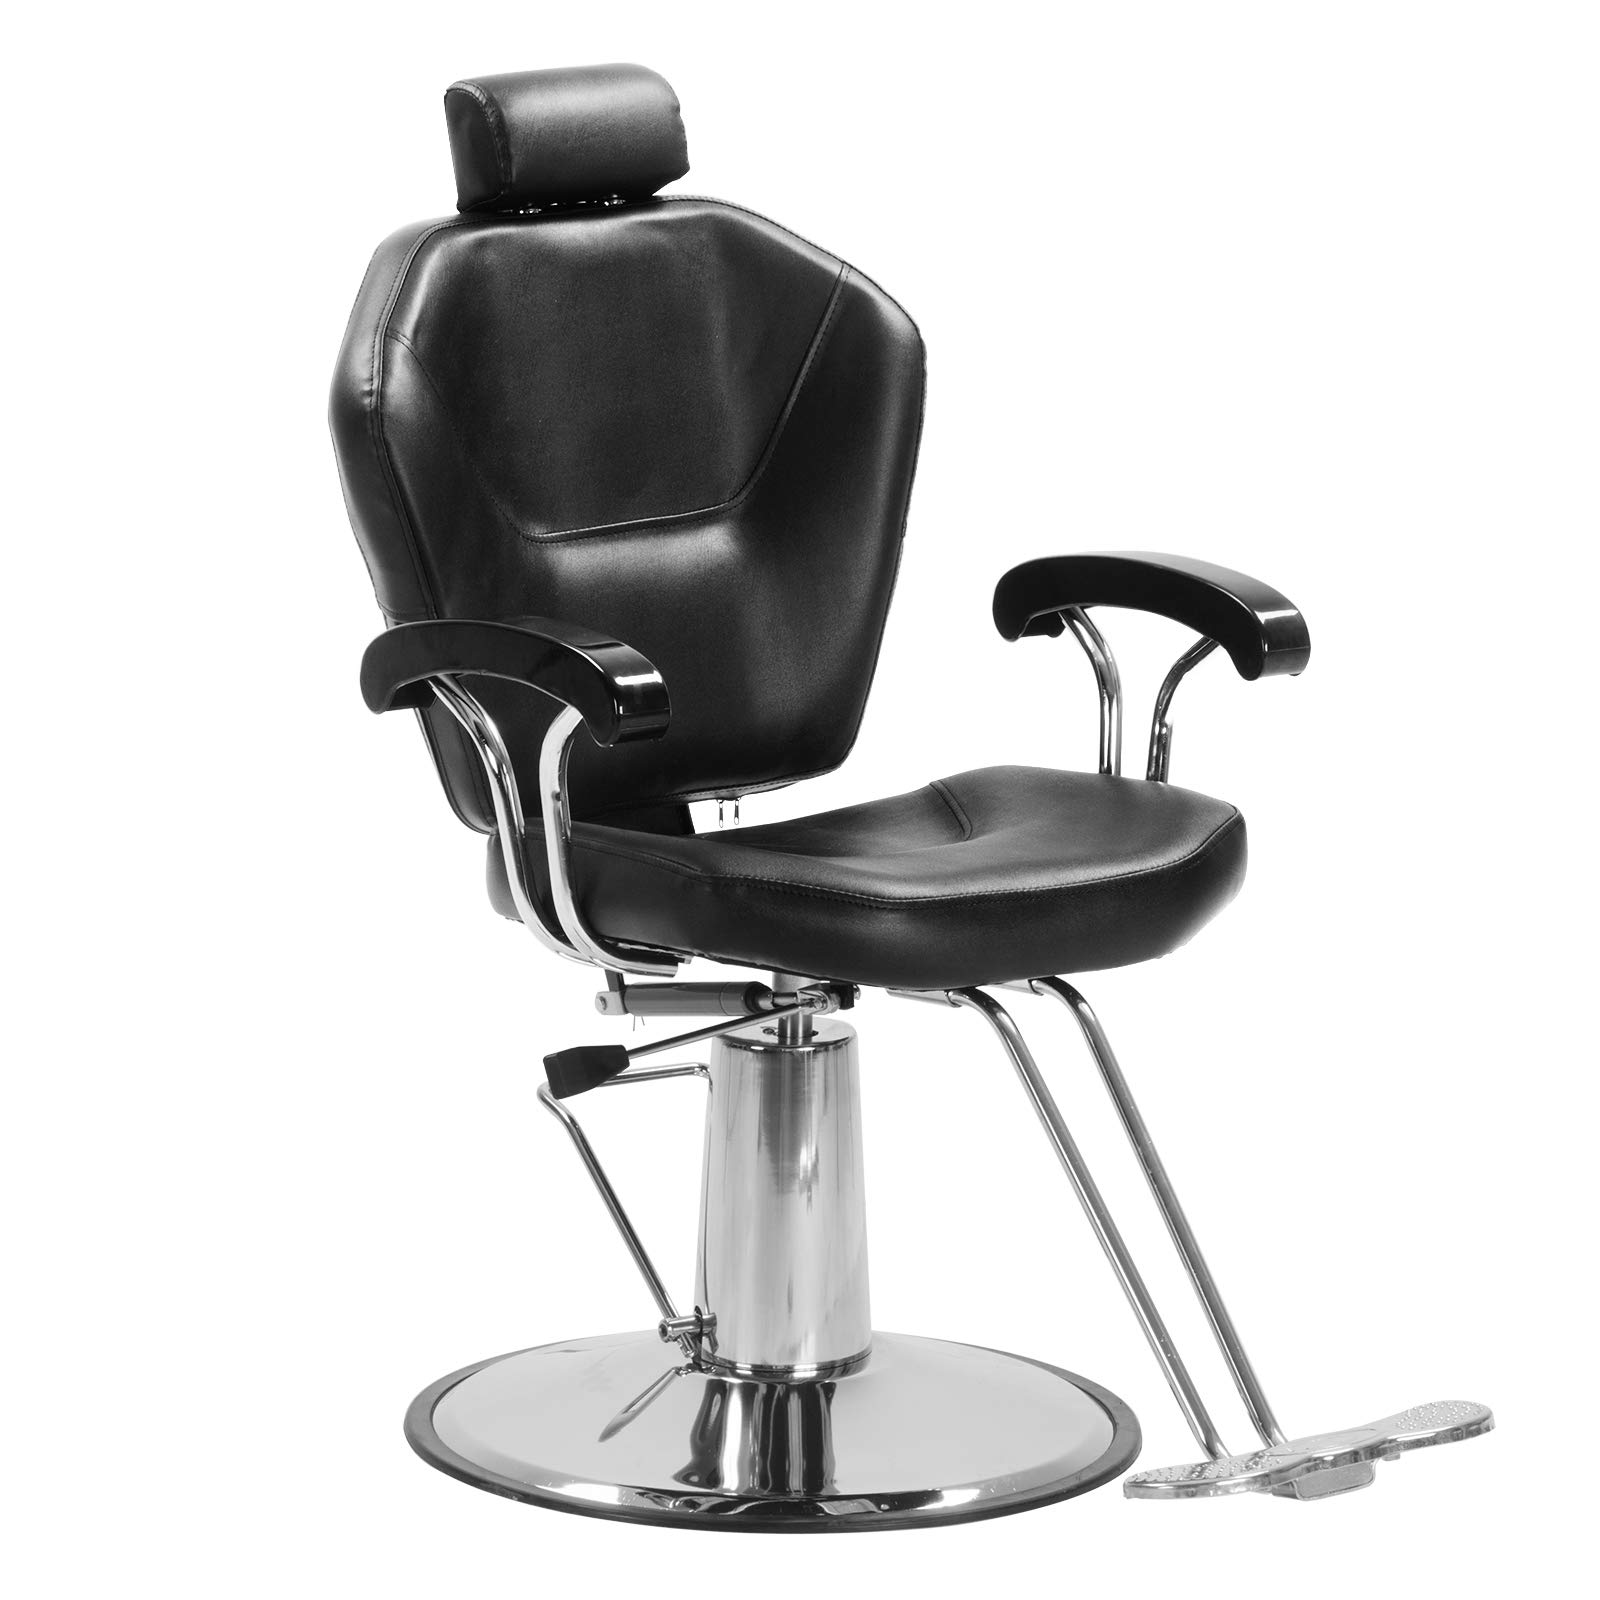 SUNCOO Hydraulic Barber Chair Reclining Spa Chair Beauty Shampoo Equipment- Solid Pedal, Adjustable Removable Headrest, Classic Hair Styling, 360 Degree Swivel, Black